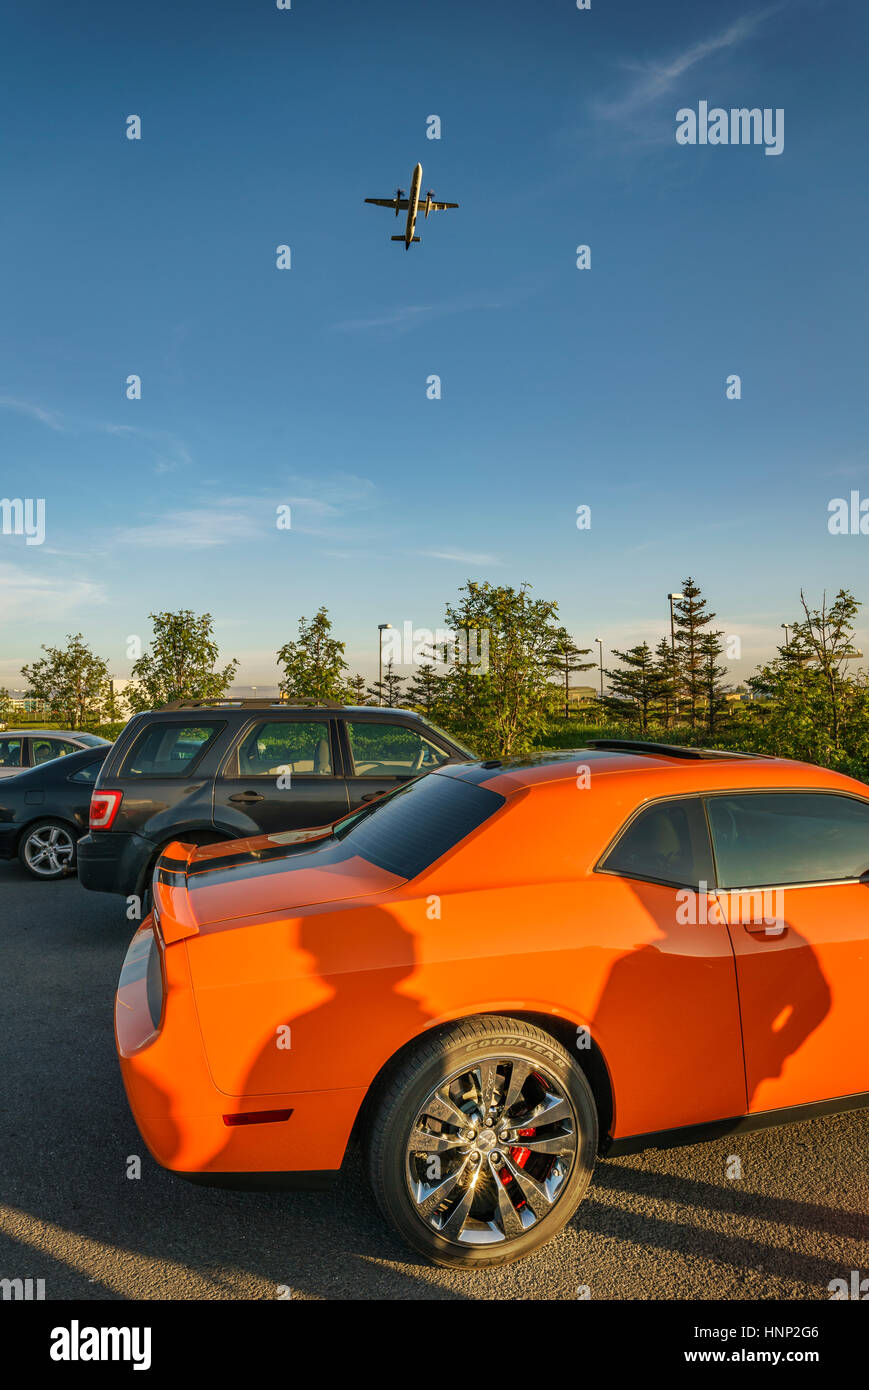 Orange Ford Mustang with plane overhead, Reykjavik, Iceland - Stock Image